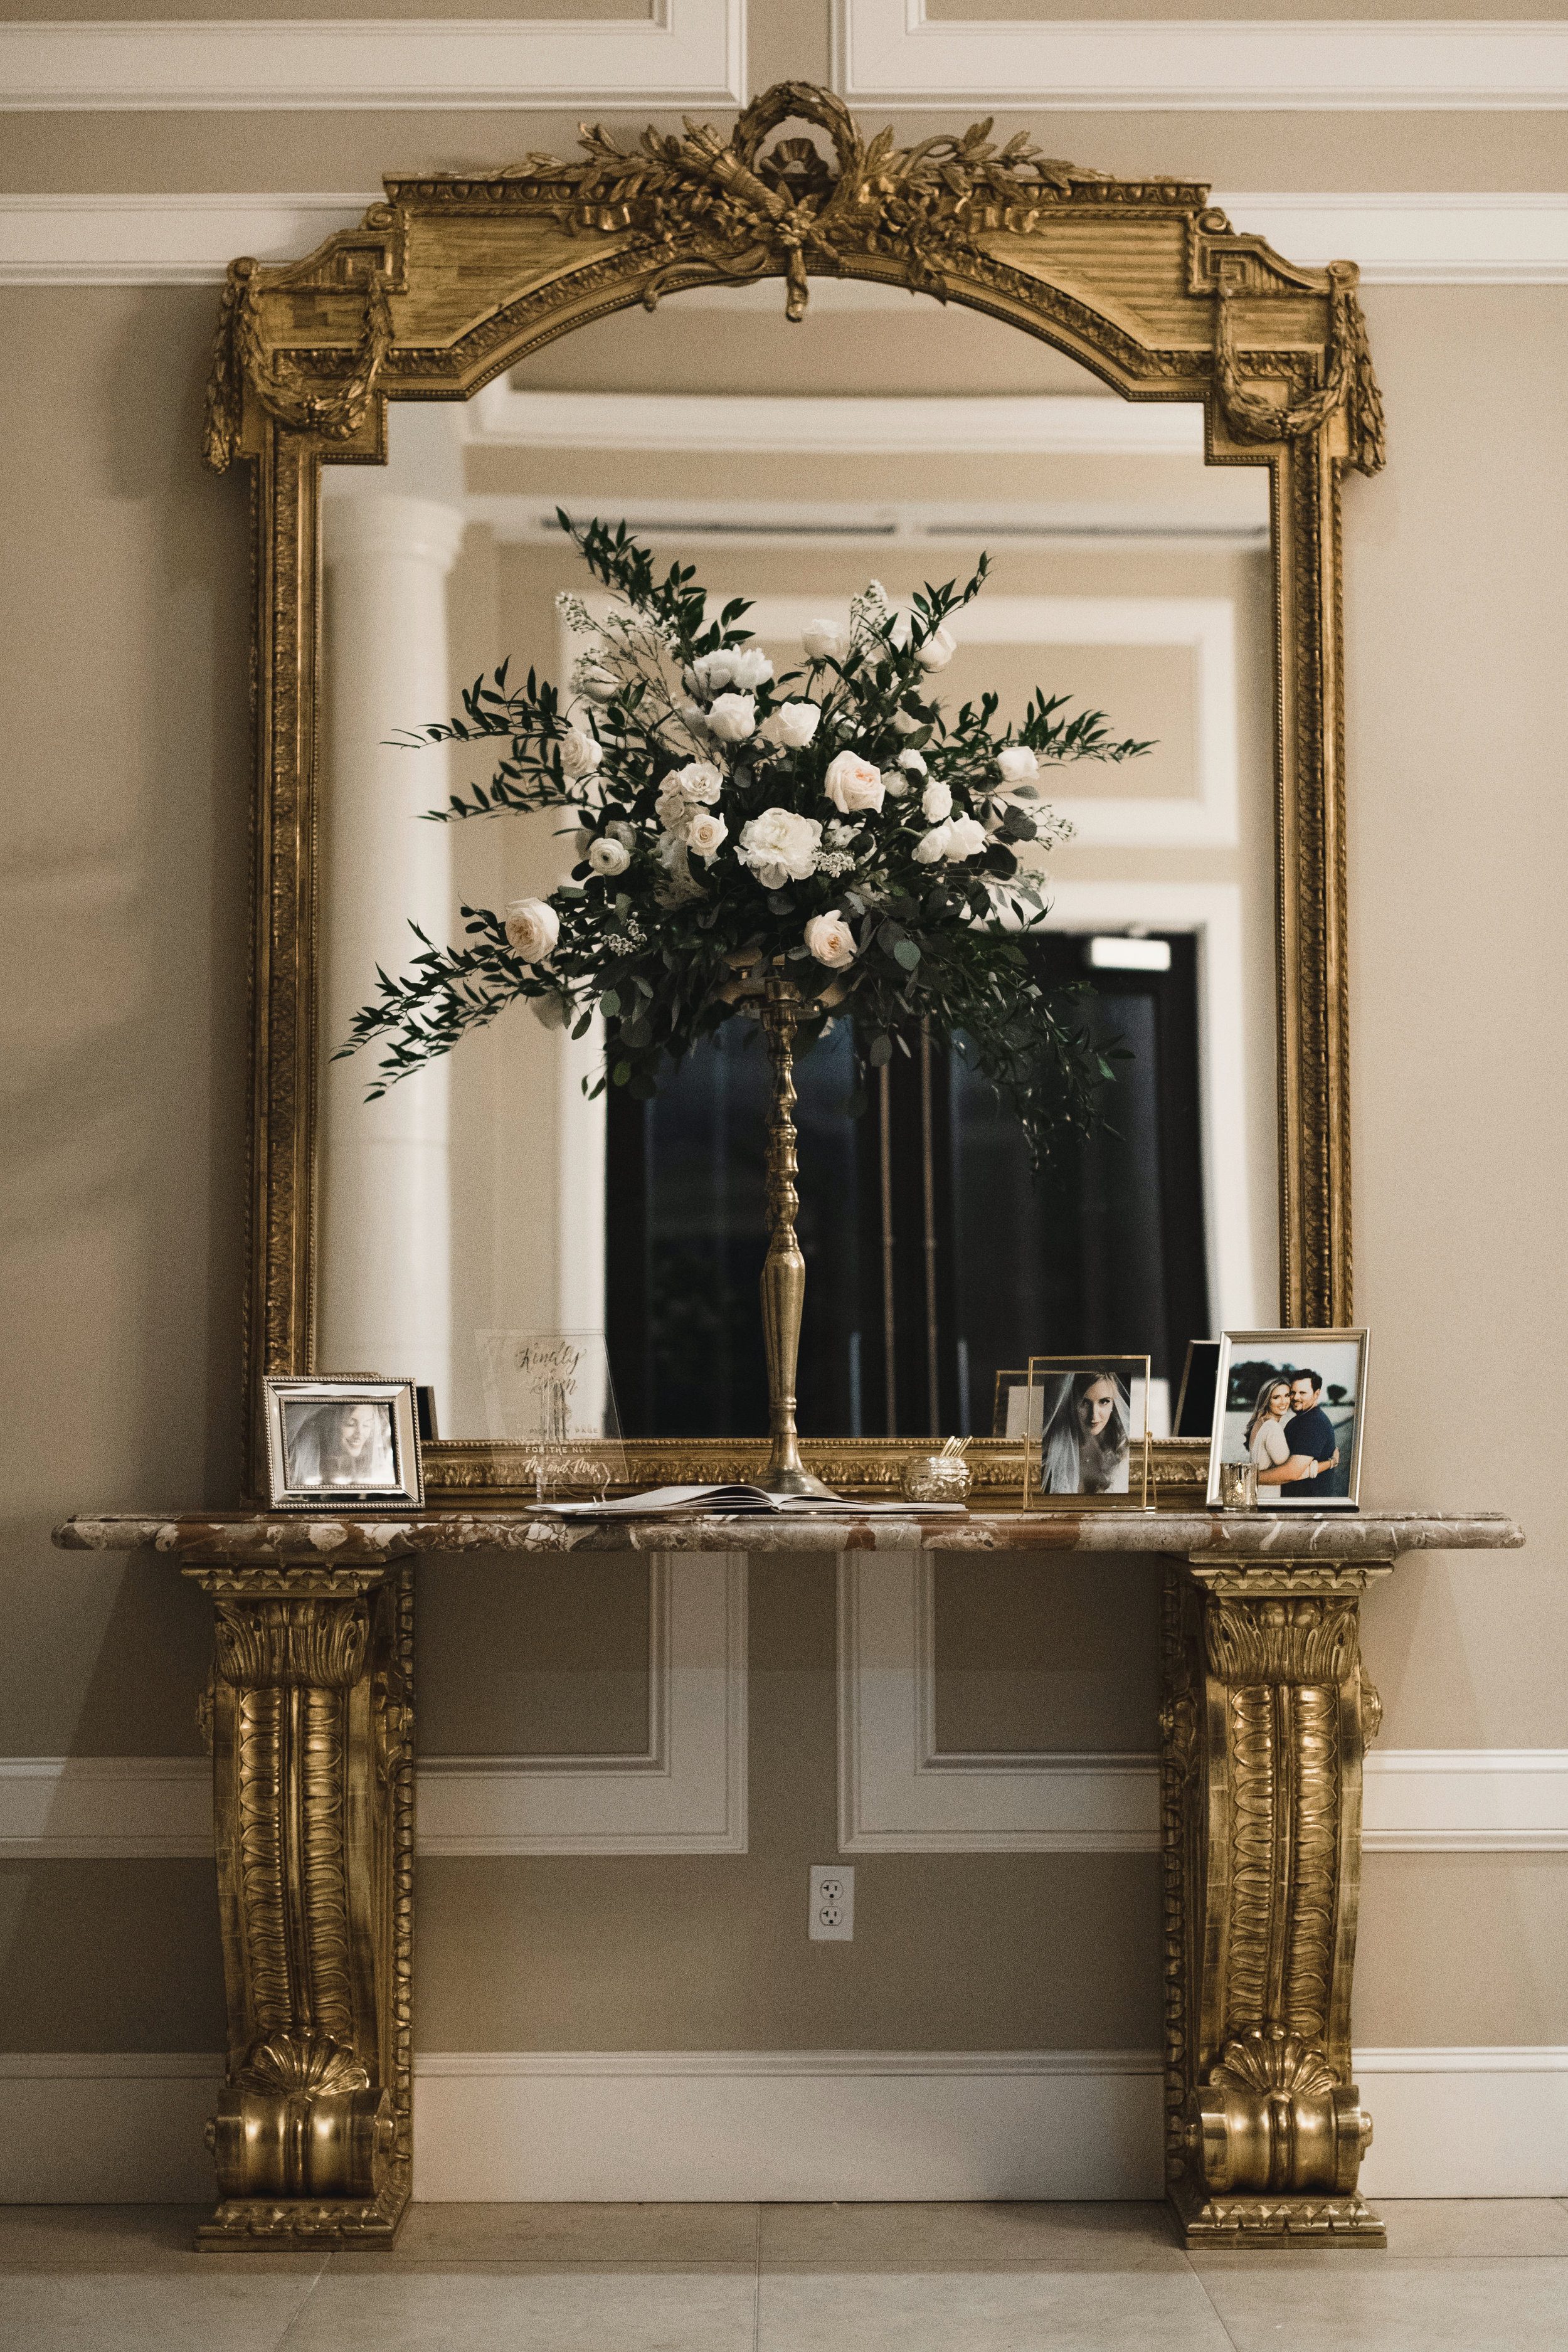 Southern Fete, Southern Wedding, Welcome Entry Table, Kimbrali Photography